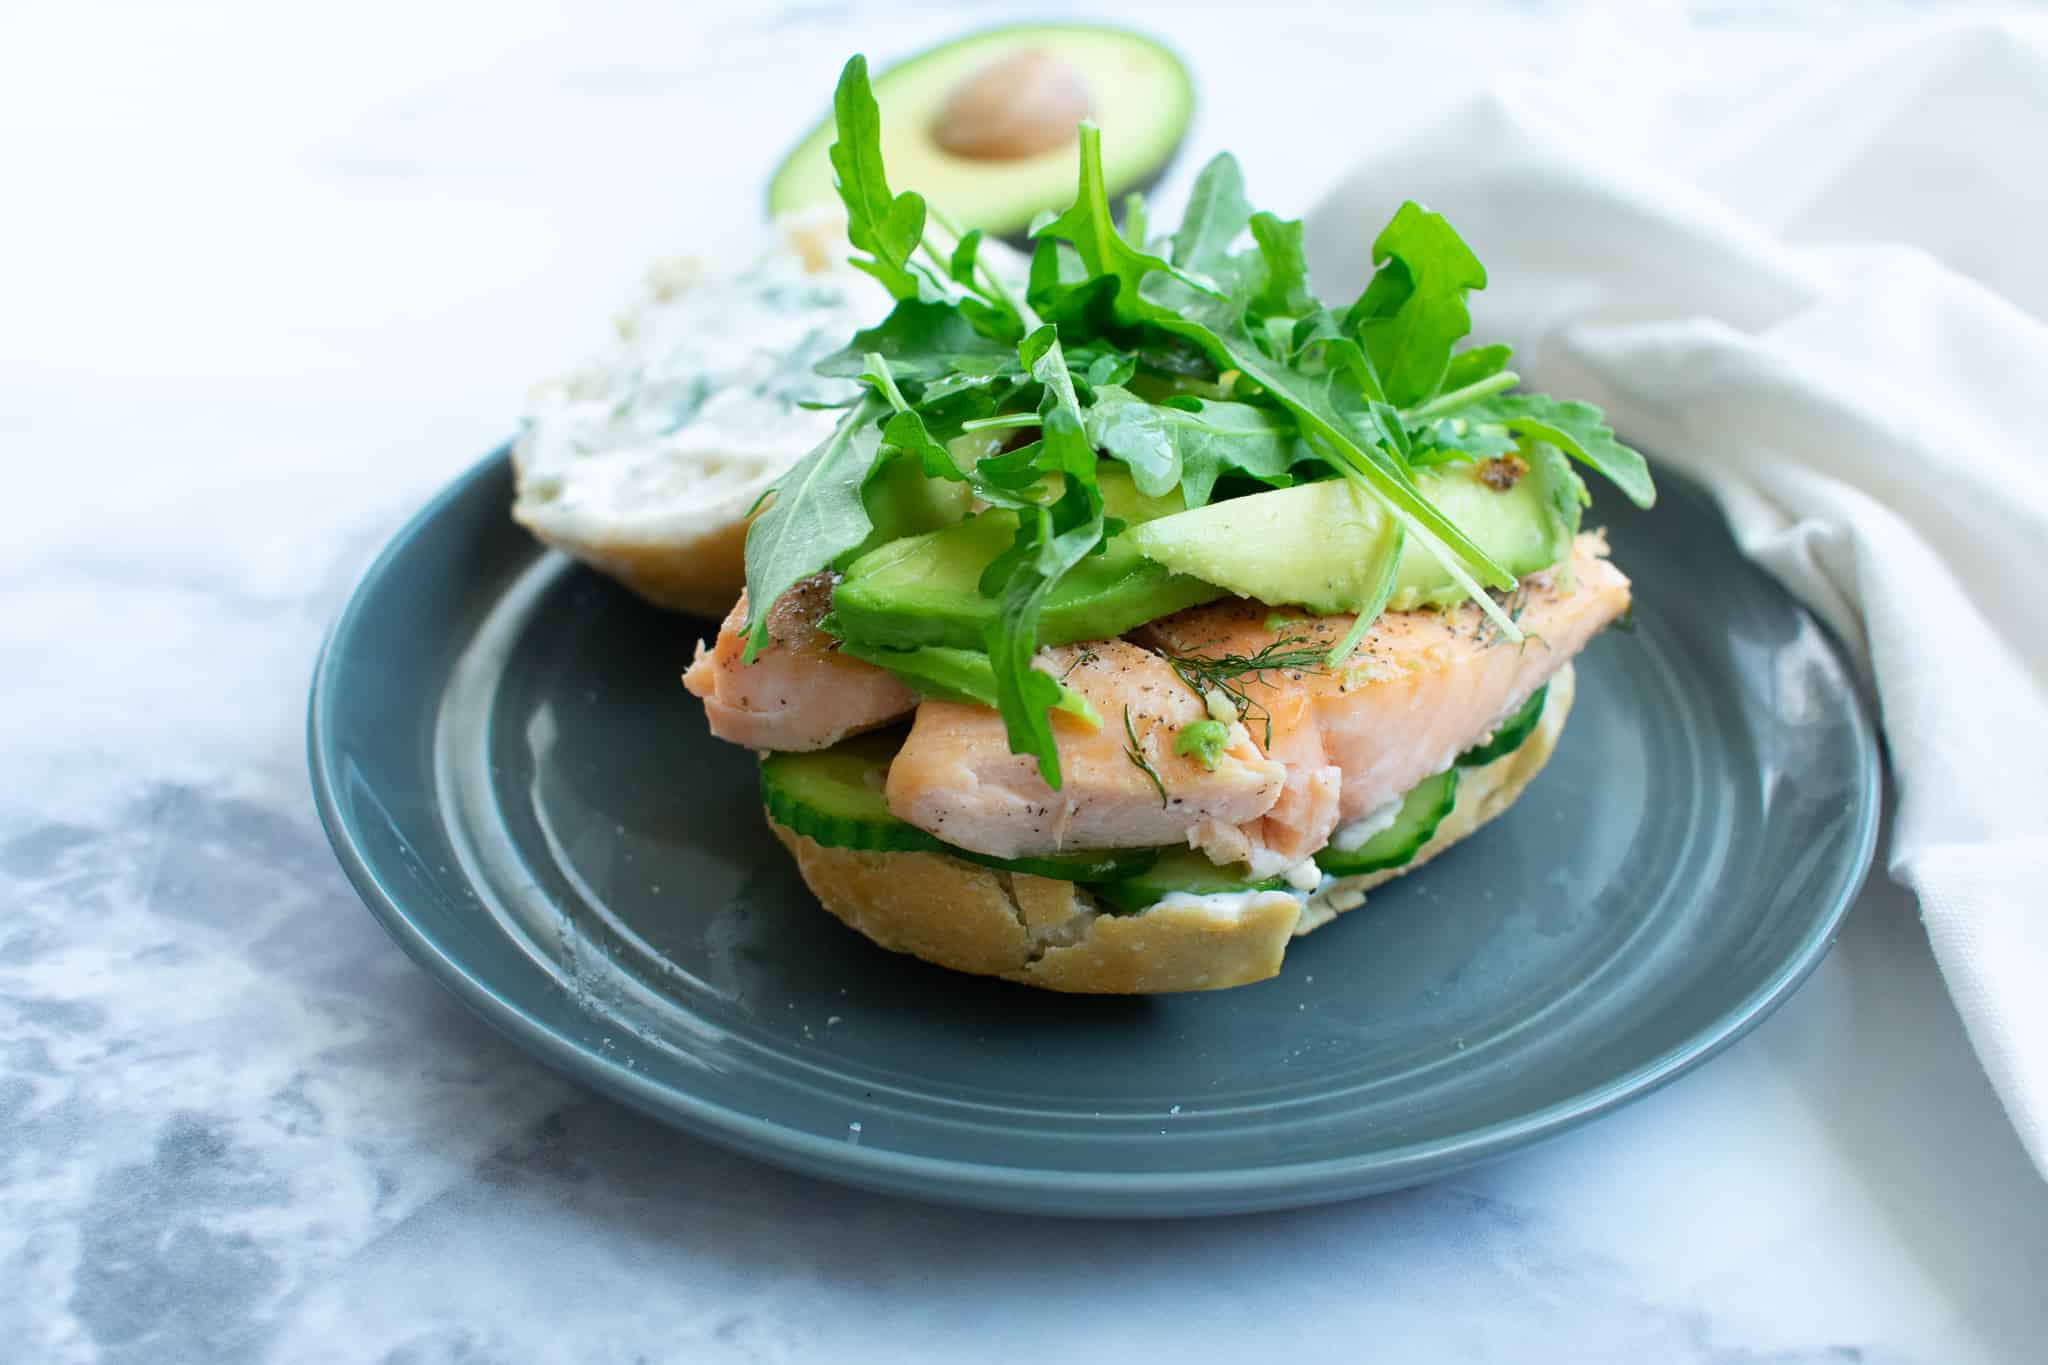 salmon sandwich on a gray plate